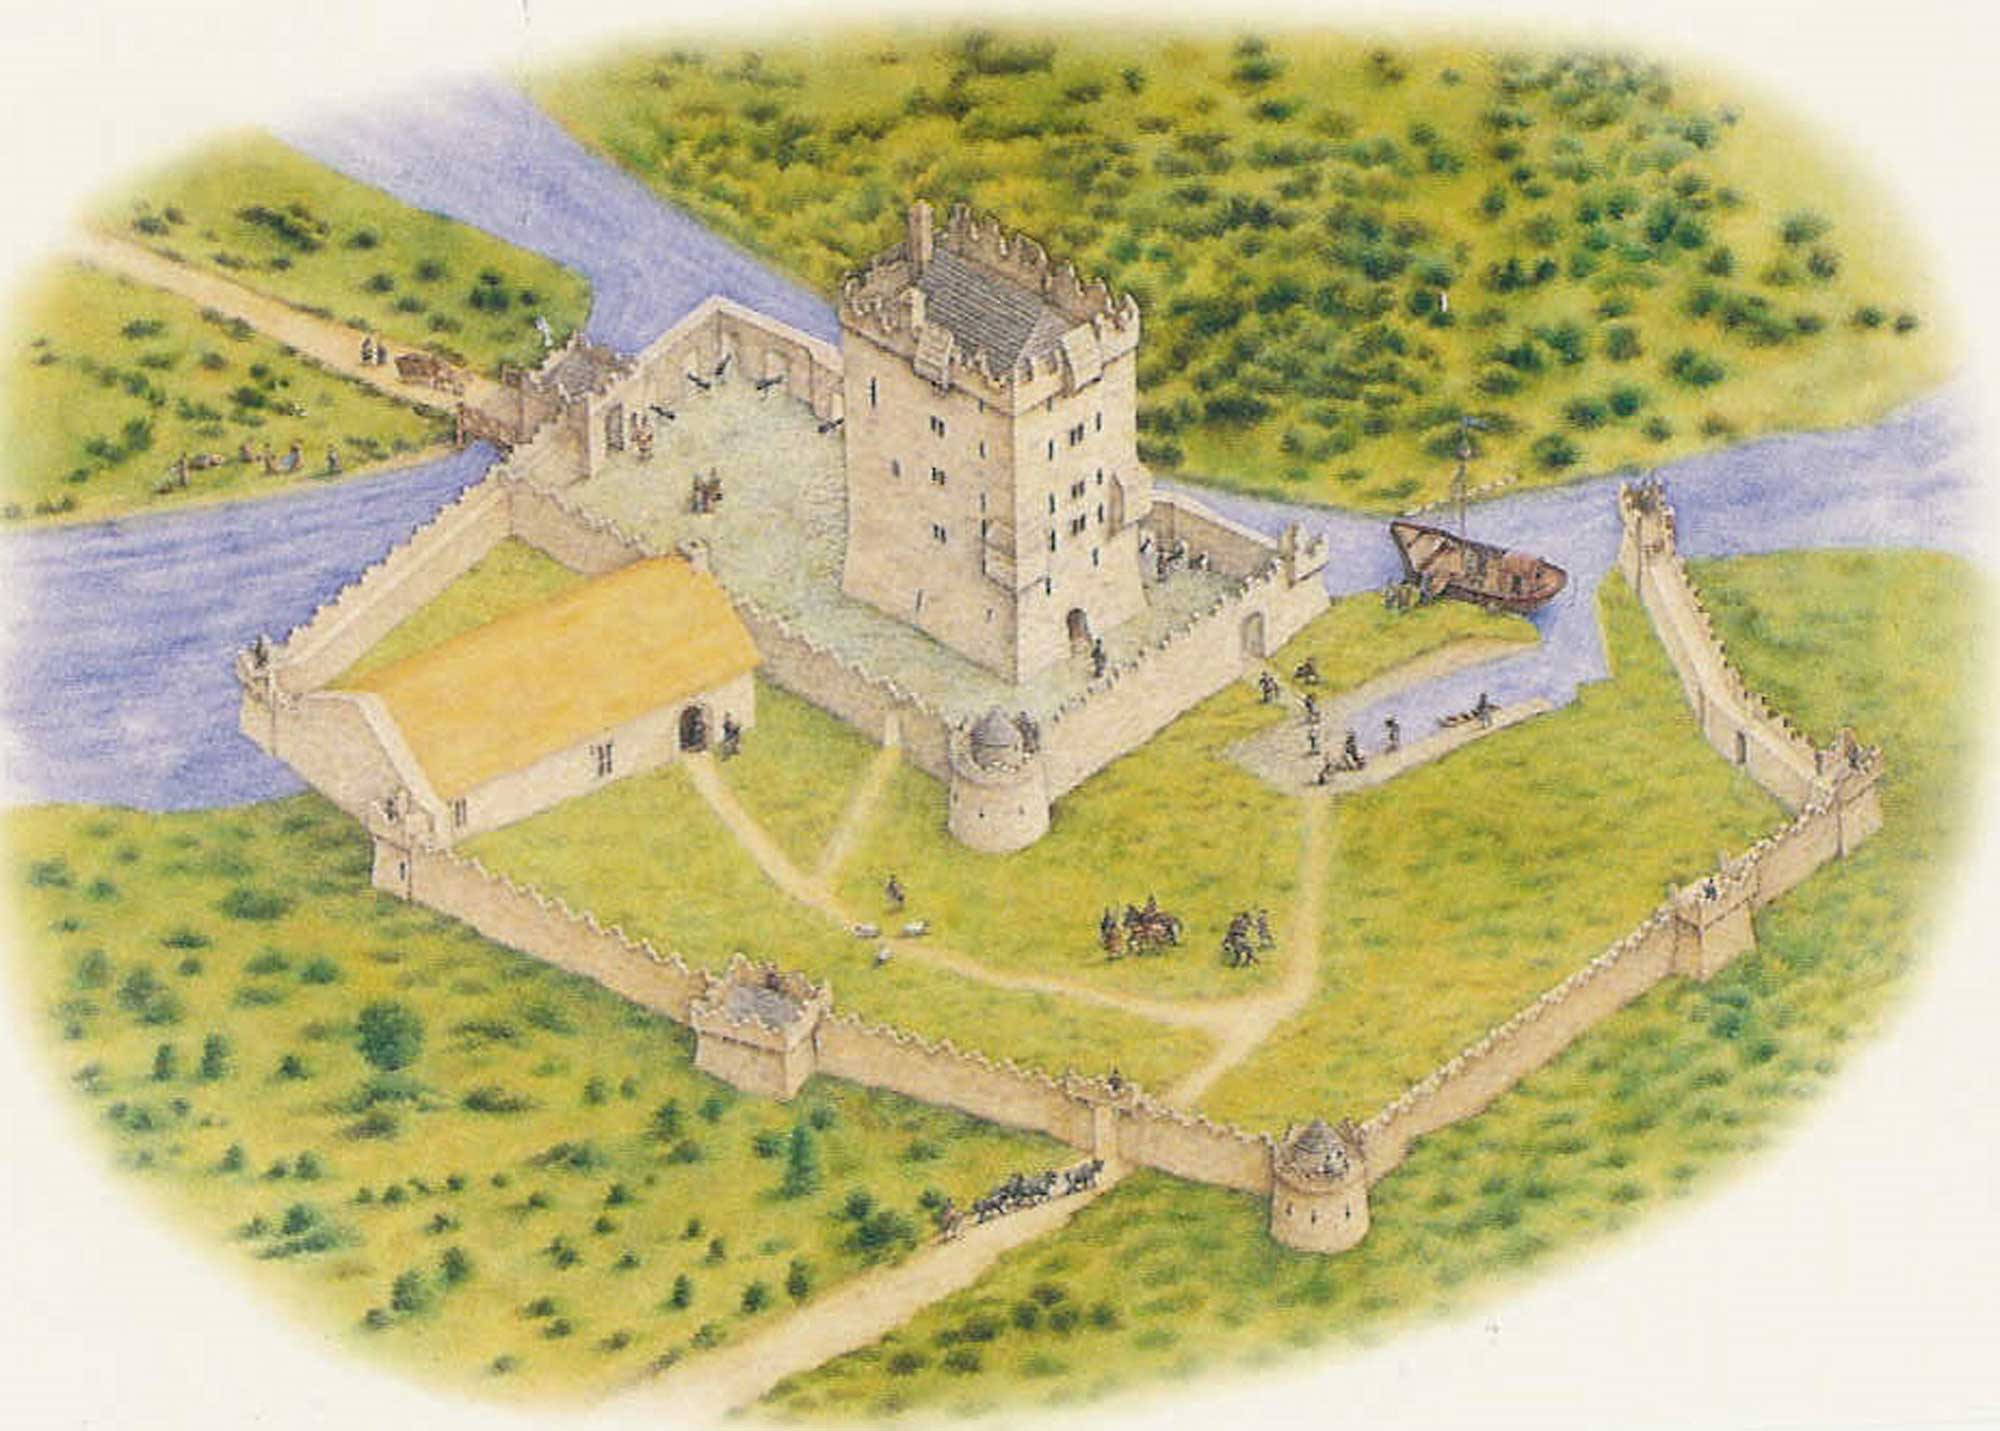 Suggested reconstruction drawings of Aughnanure Castle in the 16th century